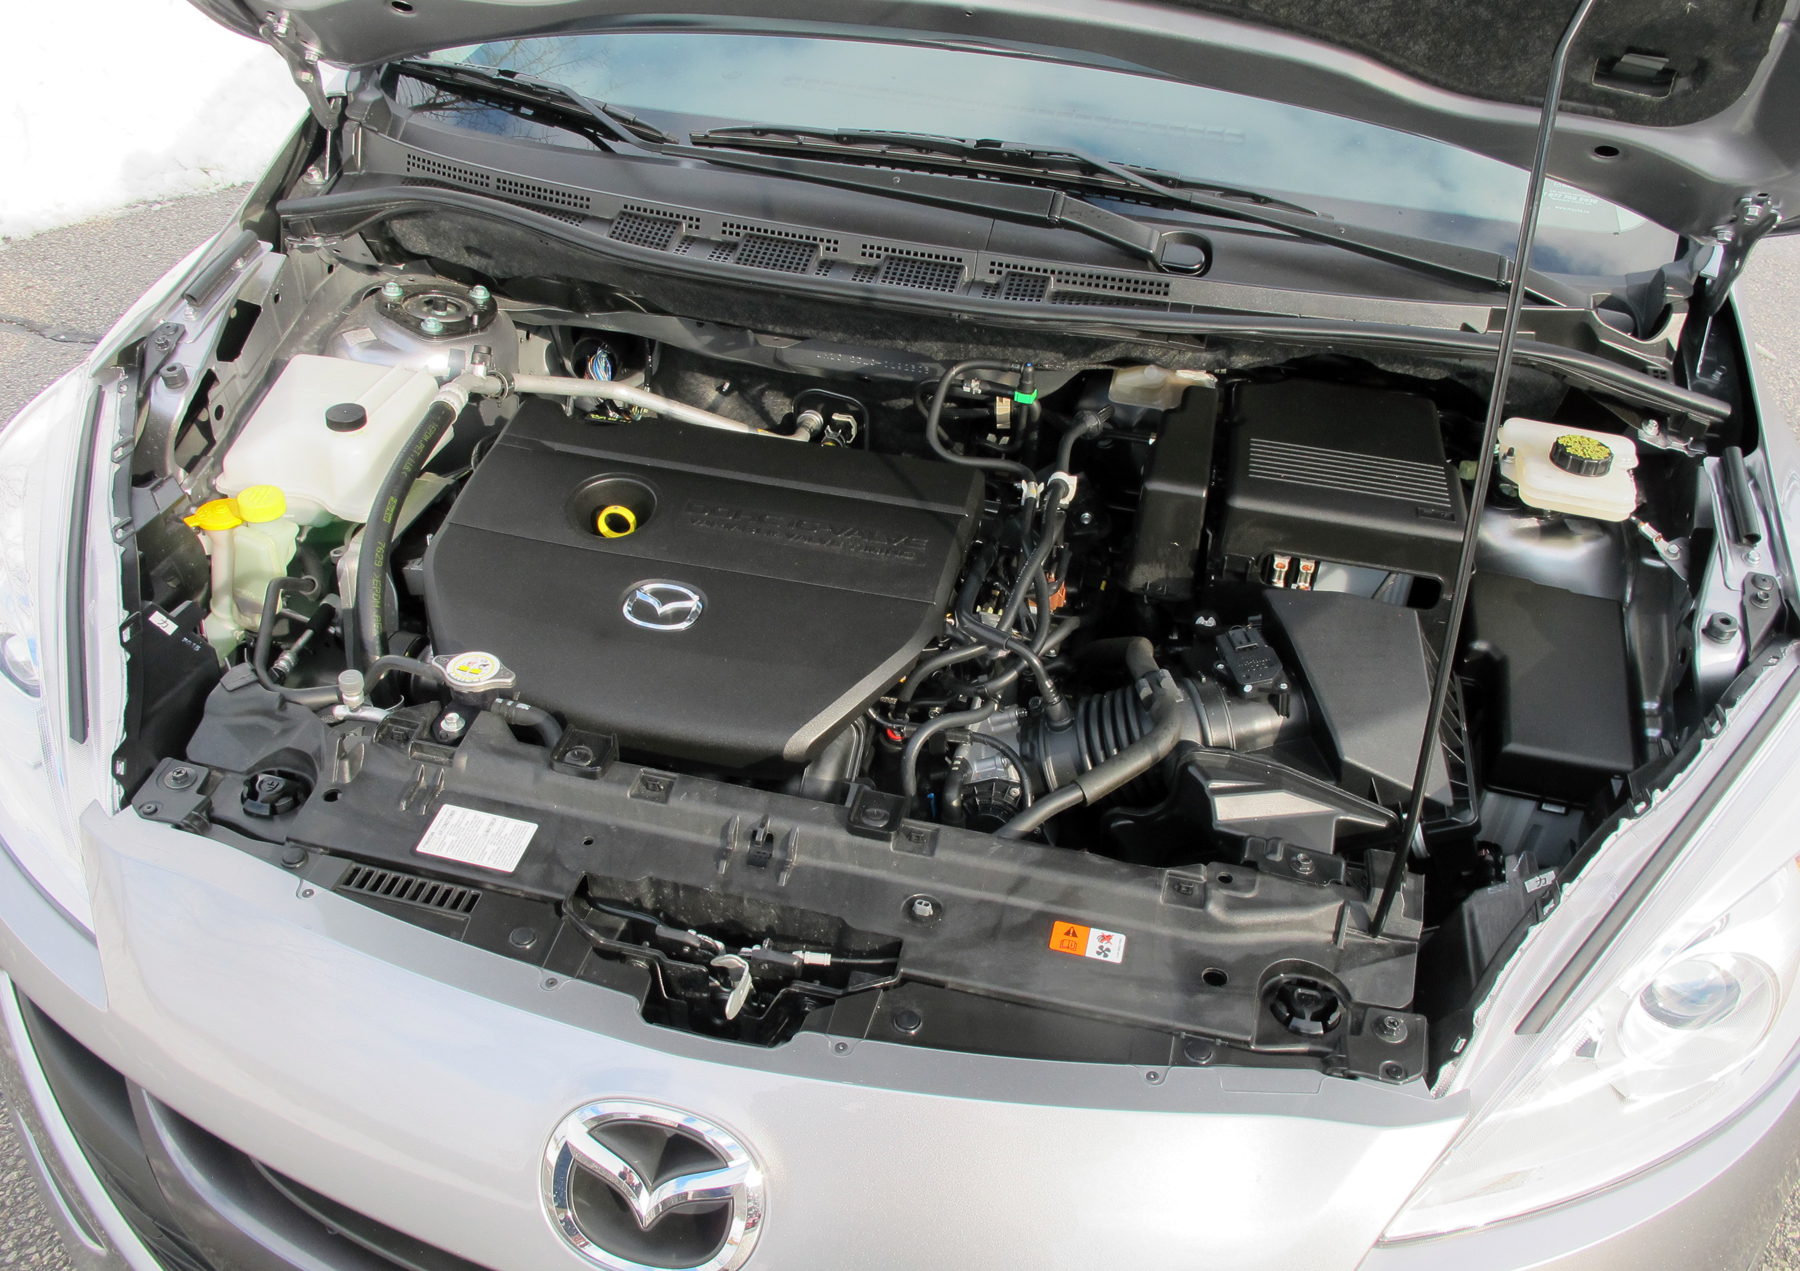 Mazda5 Offers Solid Alternative To Crossovers 2001 Mazda Mpv Engine Diagram